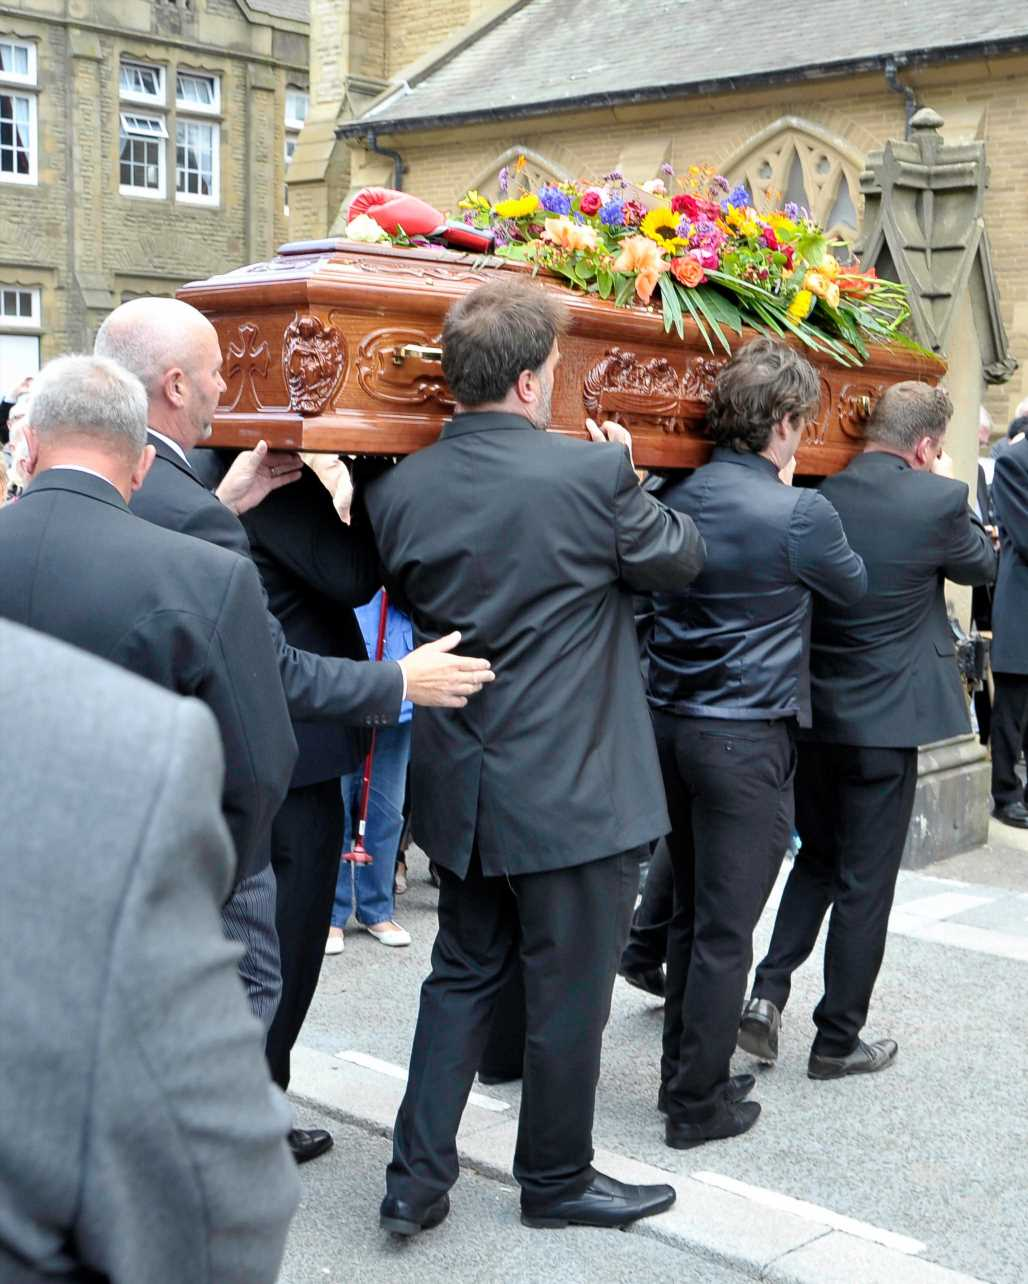 Joe Longthorne funeral – Nolan sisters, Roy Chubby Brown and Ricky Tomlinson among celebs paying their respects to entertainer who died aged 64 after cancer battle